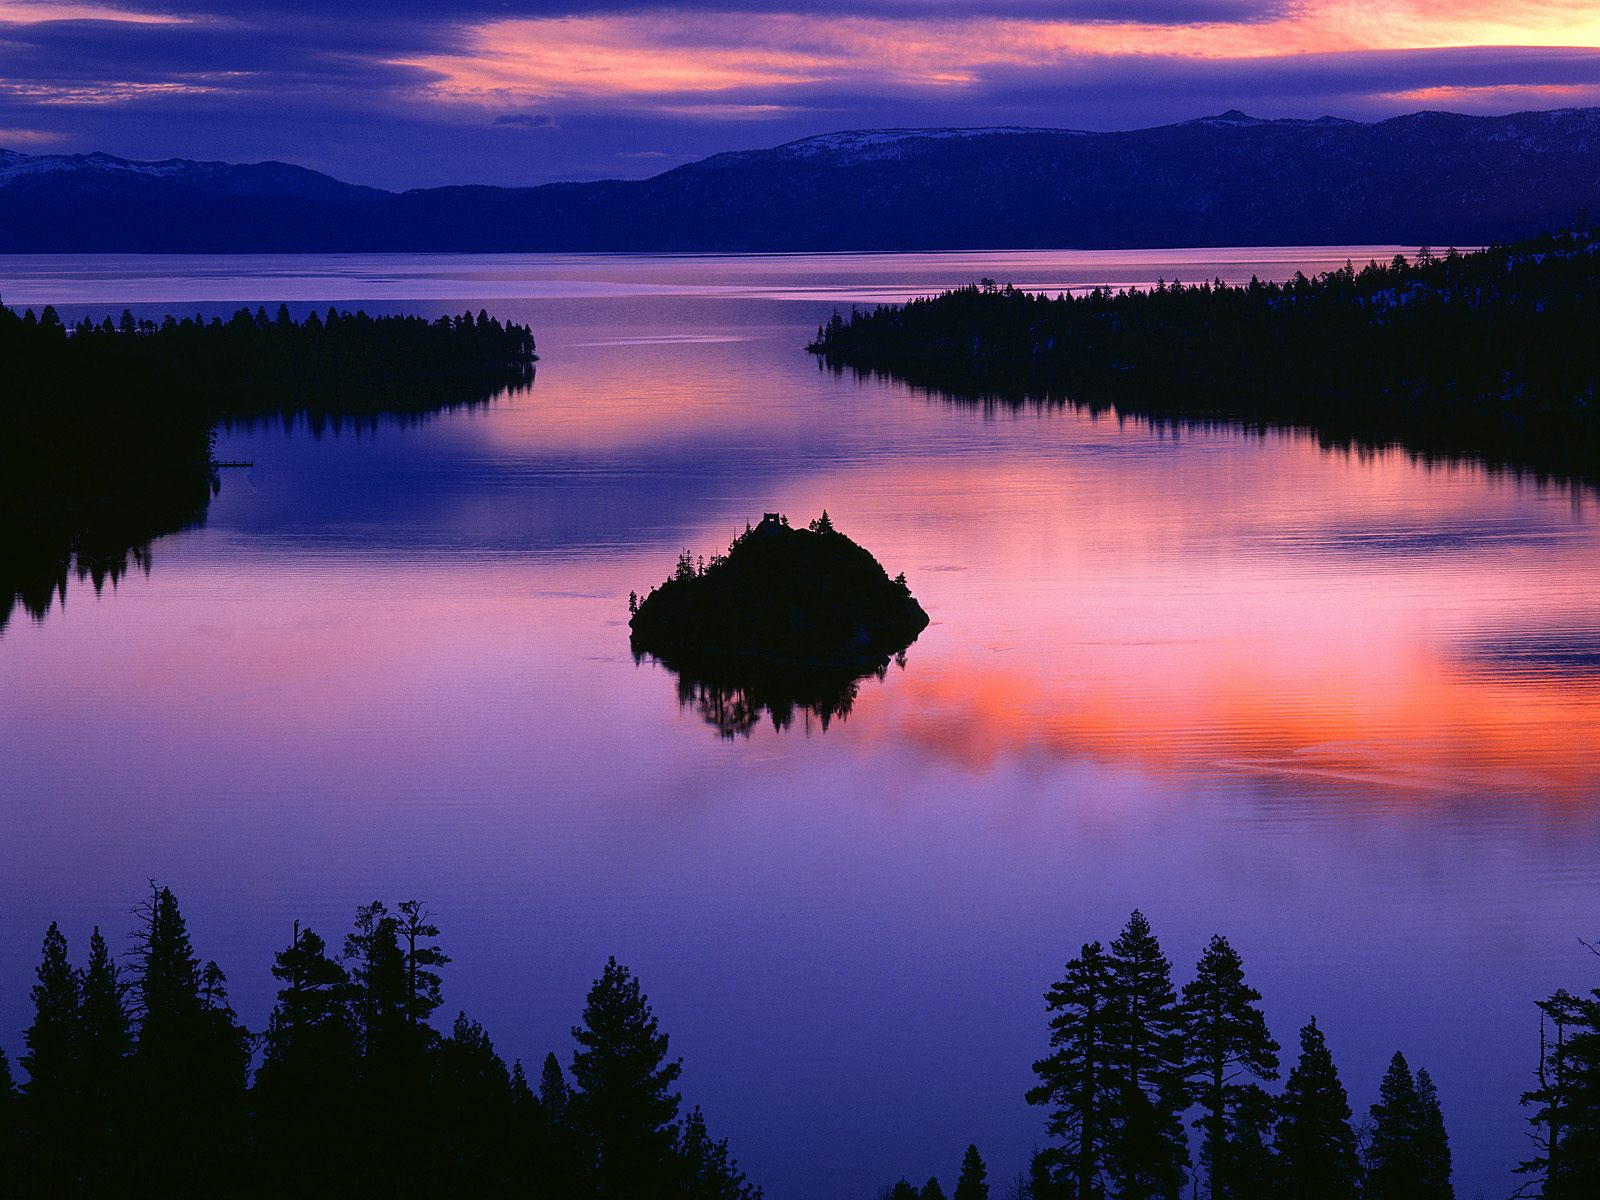 lake tahoe hd sunset wallpaper lake tahoe hd desktop wallpaper lake 1600x1200